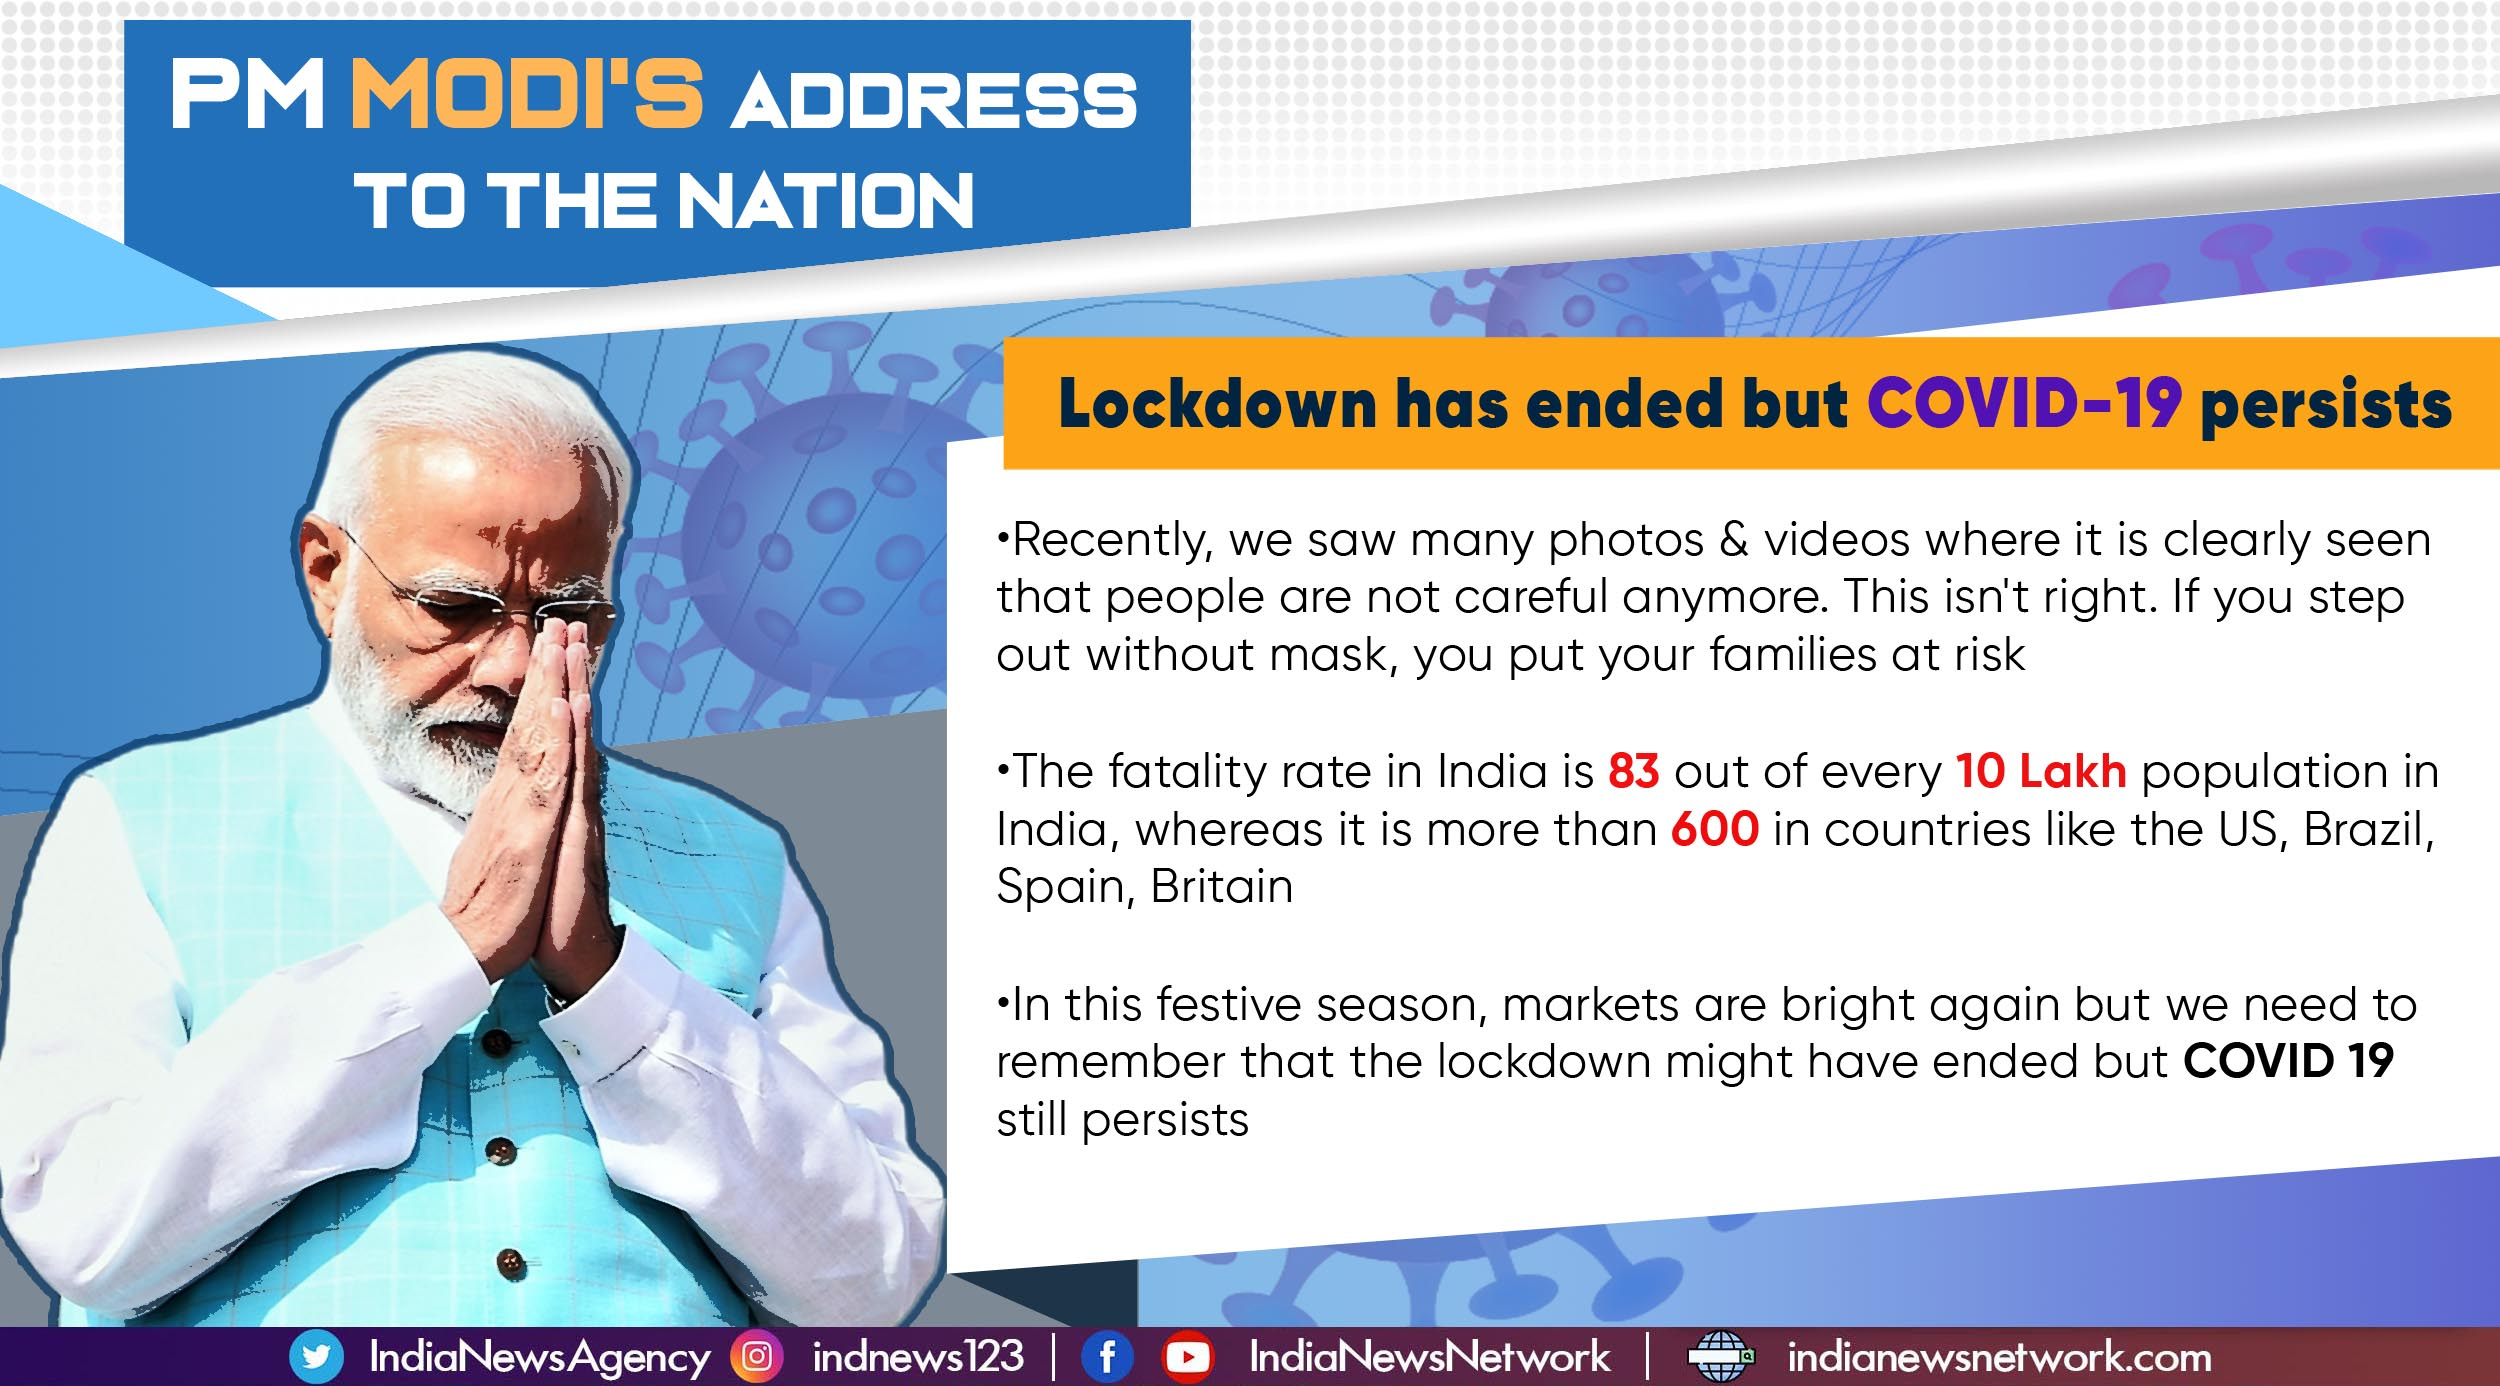 Key points from PM Narendra Modi's address to the nation